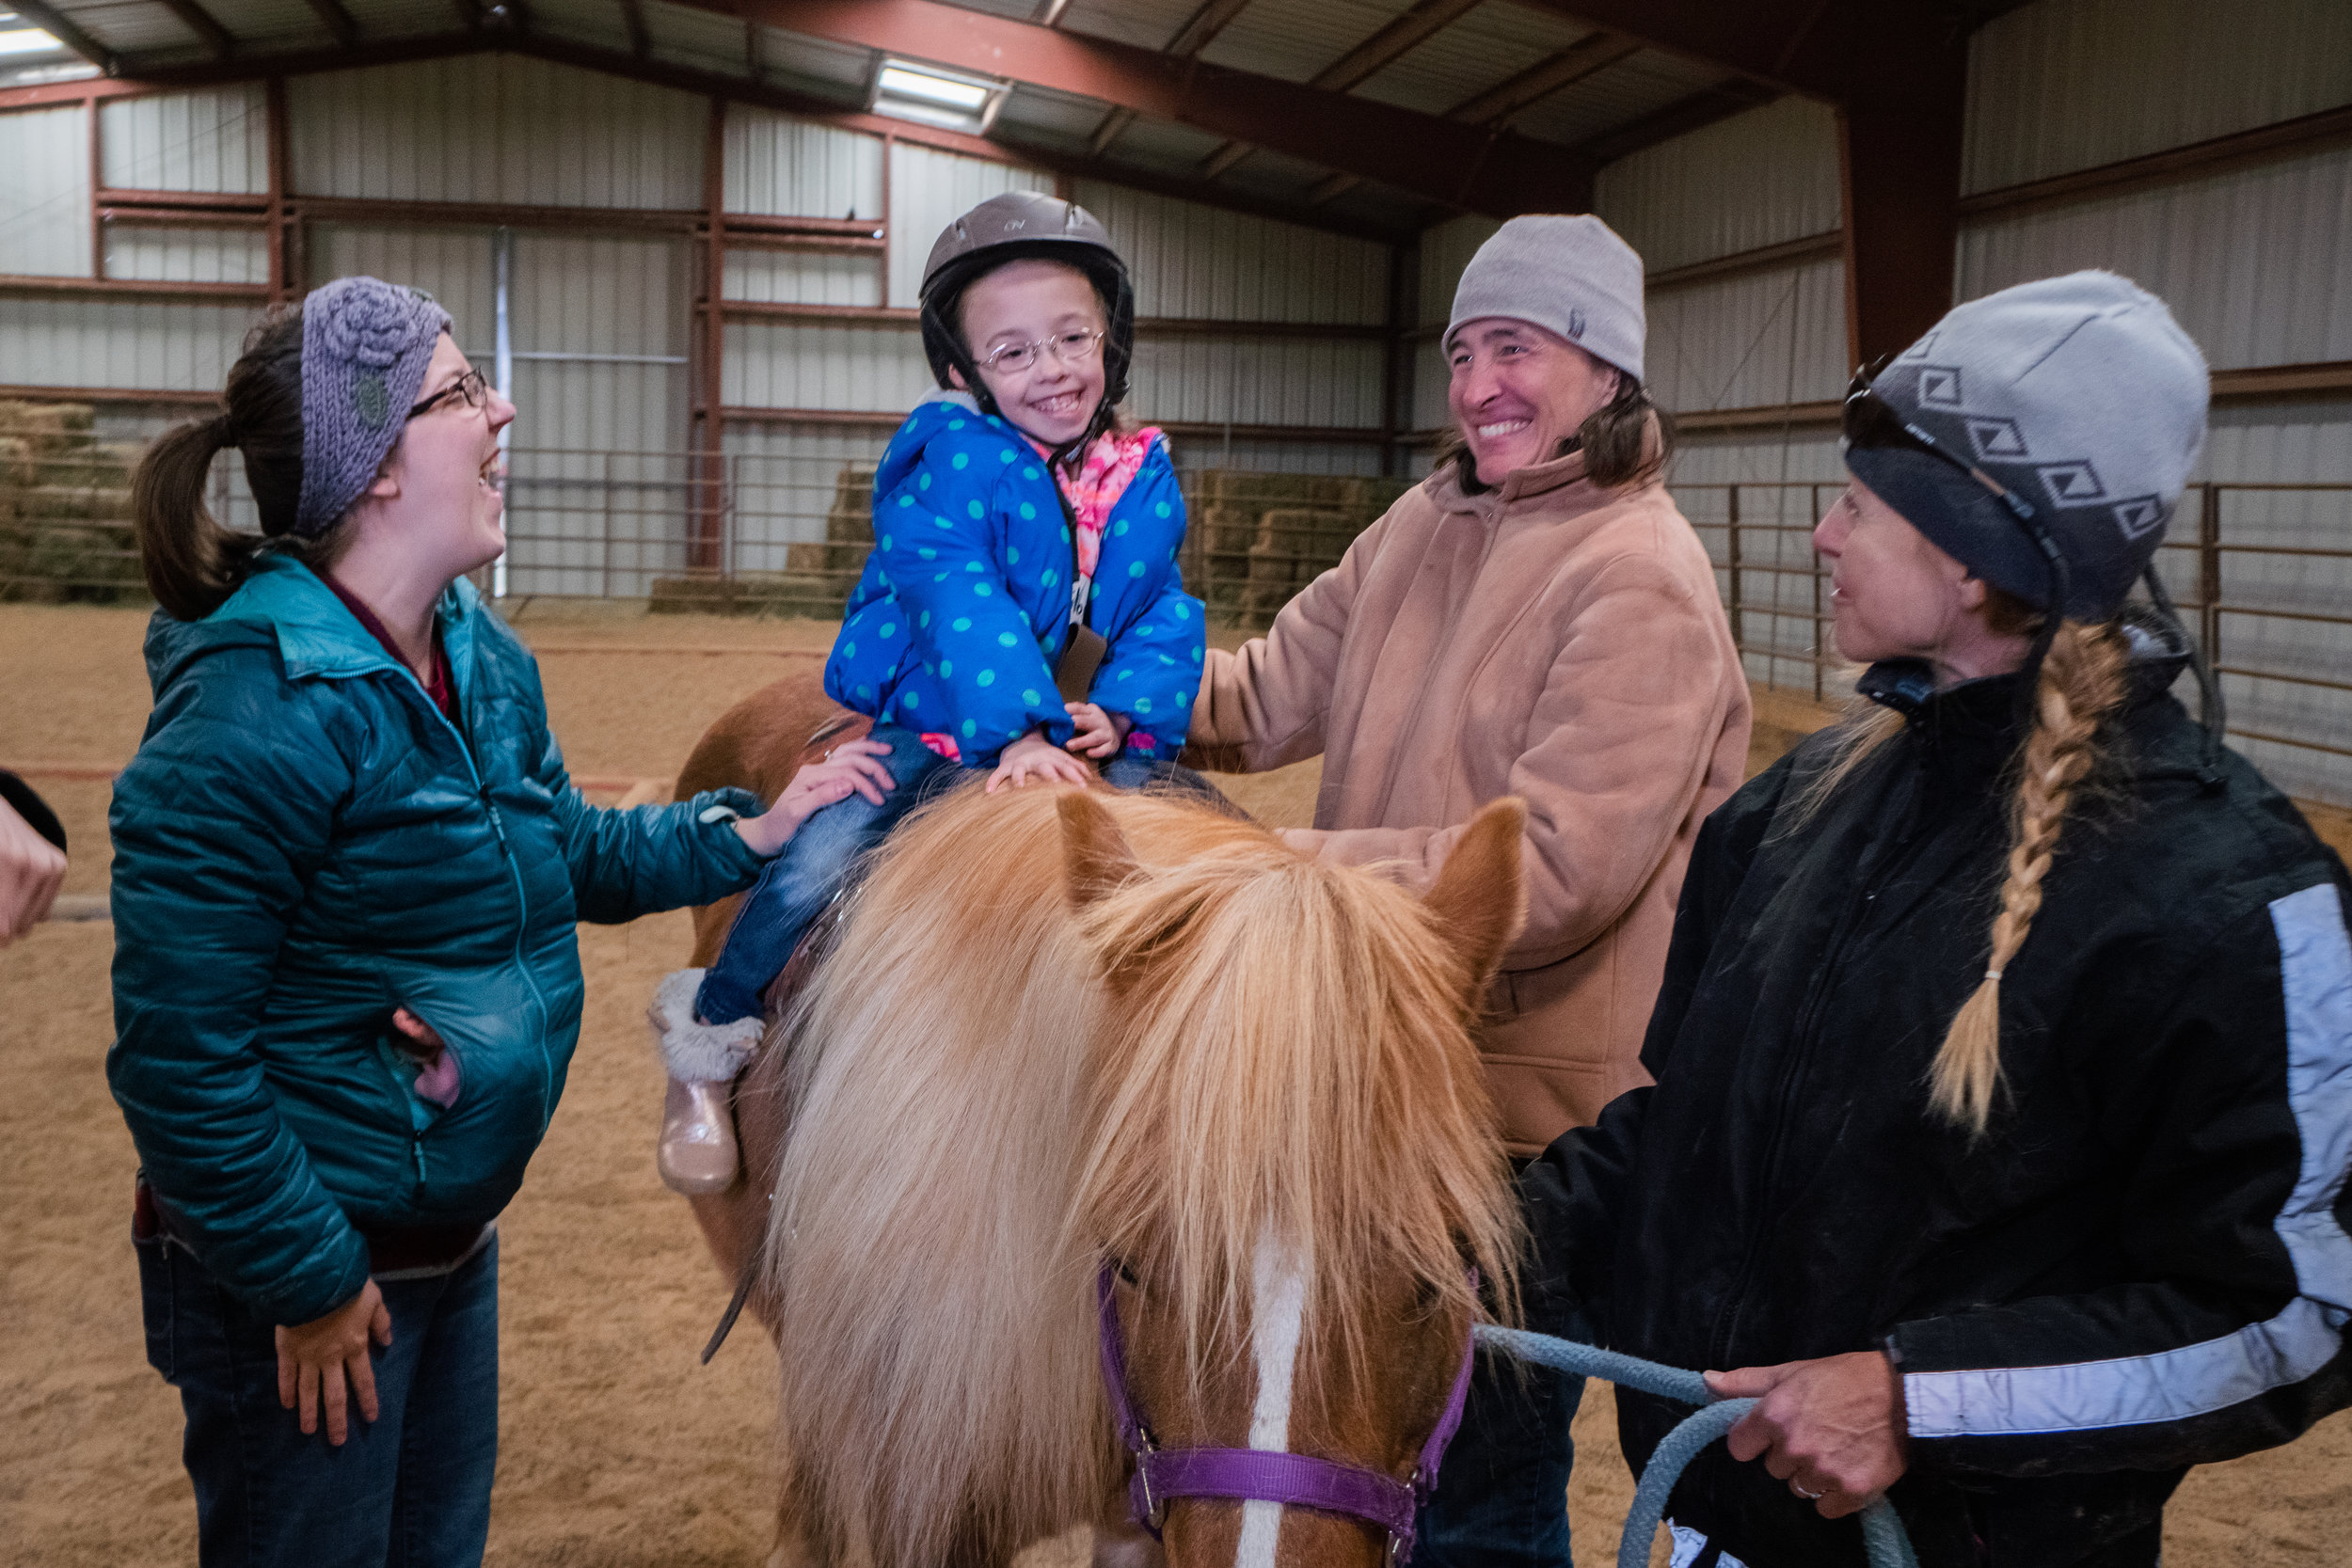 [photo taken during an Early Literacy event in collaboration with CSDB. Image of a young child riding on a horse with three adults around her. They are all in winter coats and hats, and all smiling.]